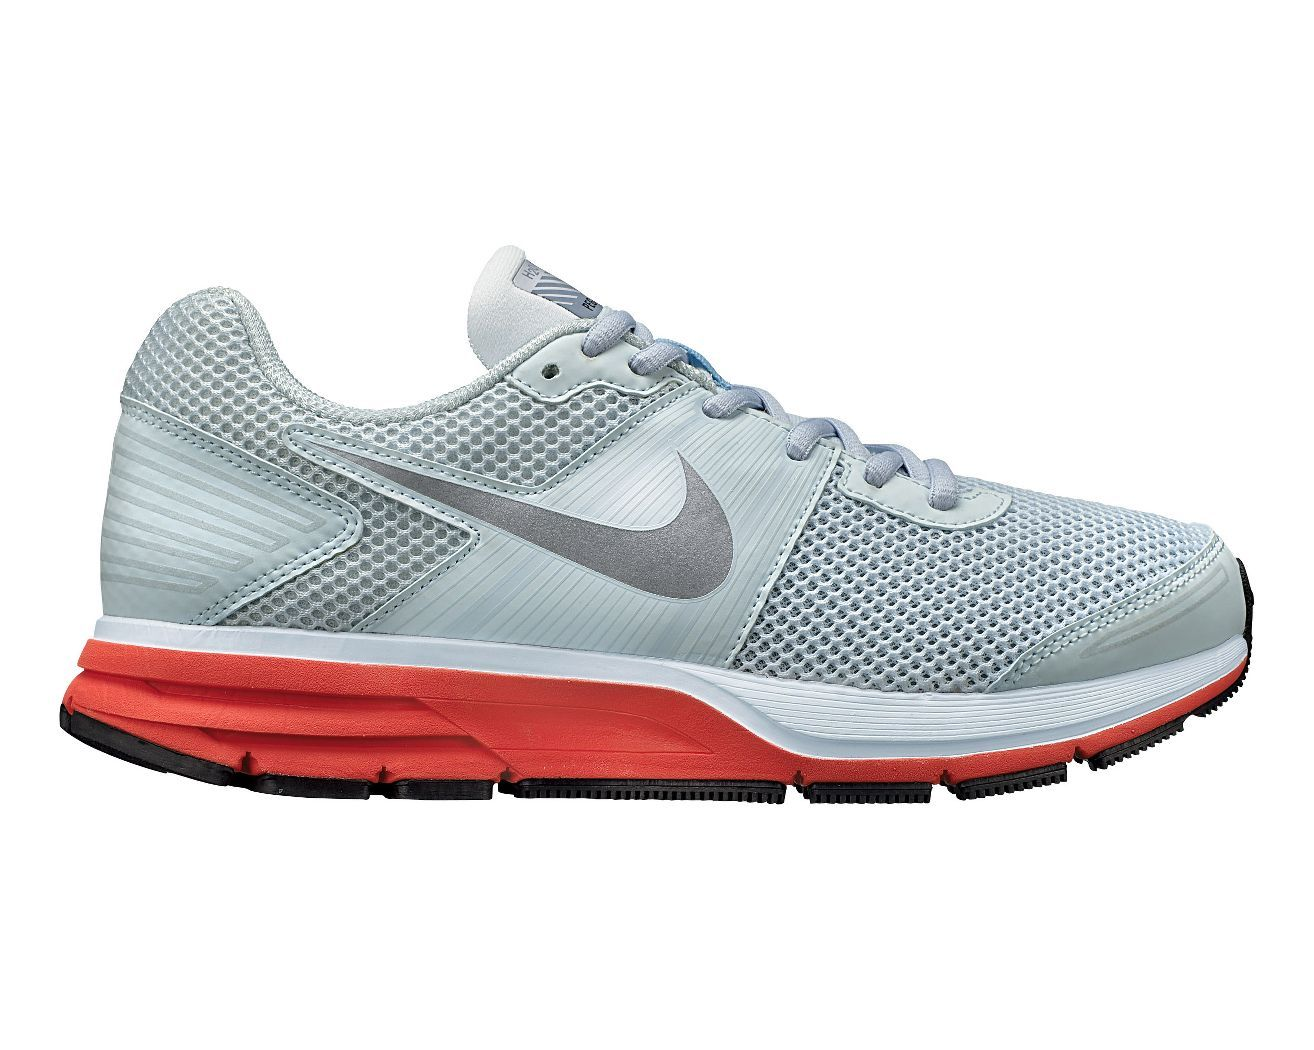 6ee0659717037 WANT AND ON SALE!!!! Womens Nike Air Pegasus+ 29 Shield Running Shoe ...